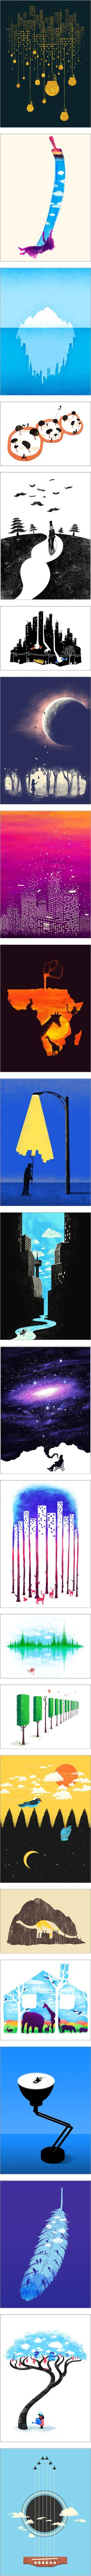 """22 artworks with clever use of negative space. Could also work for Magritte style images."""